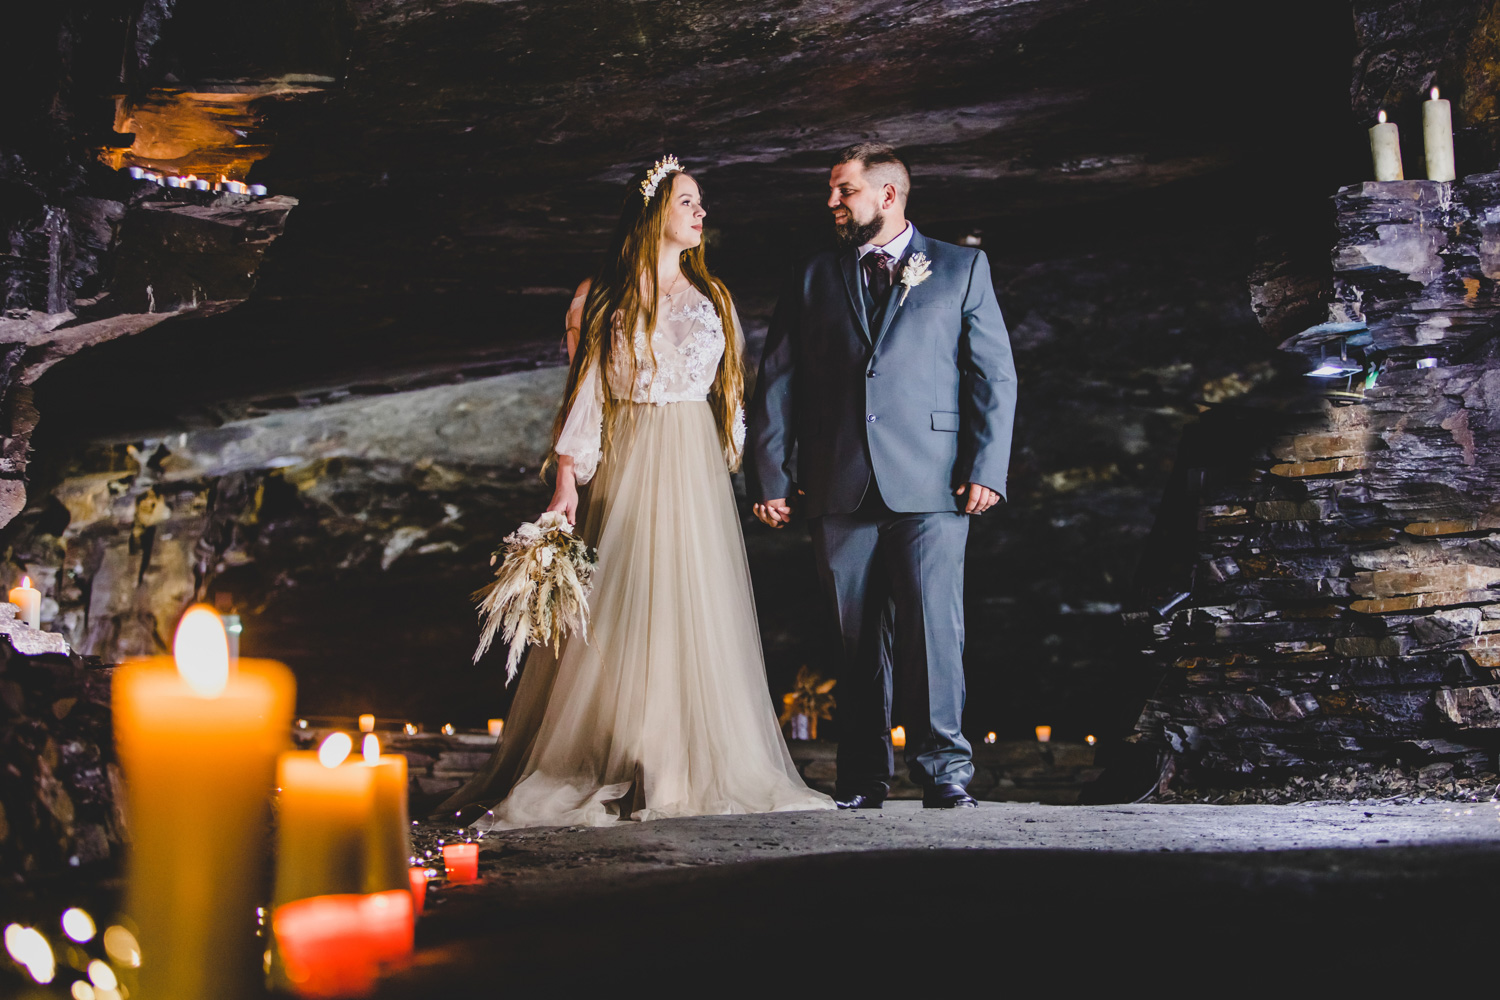 cave wedding - alternative wedding venue - unconventional wedding - romantic wedding